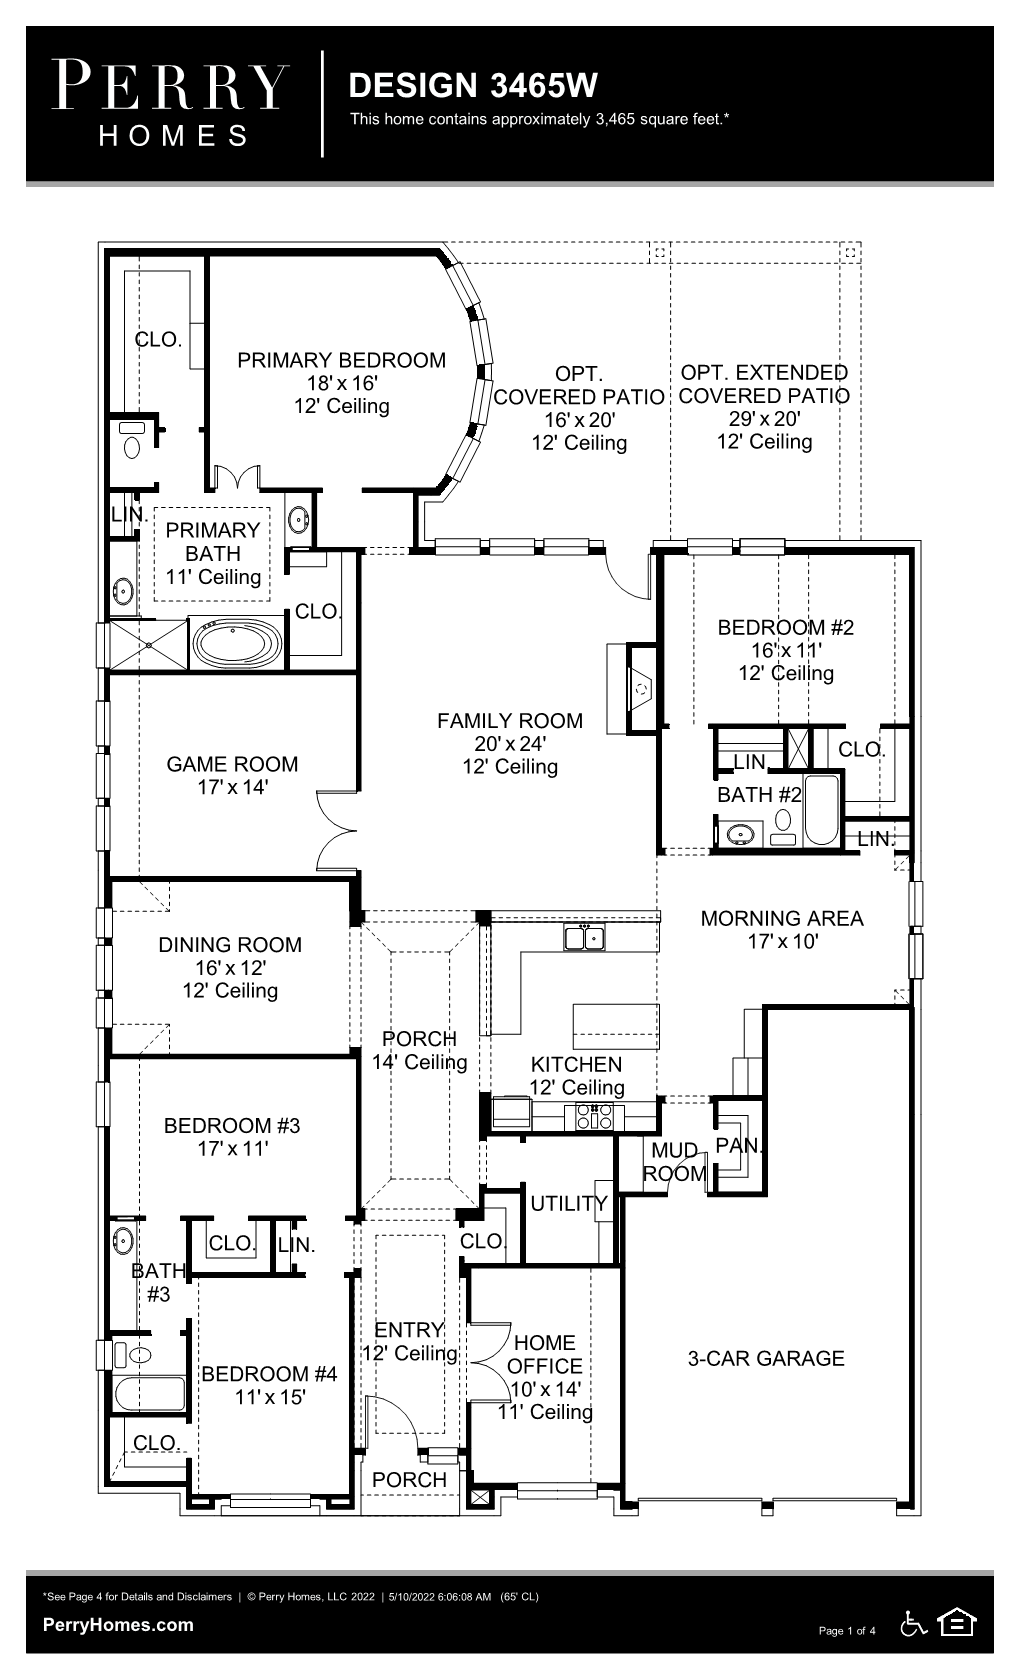 Floor Plan for 3465W